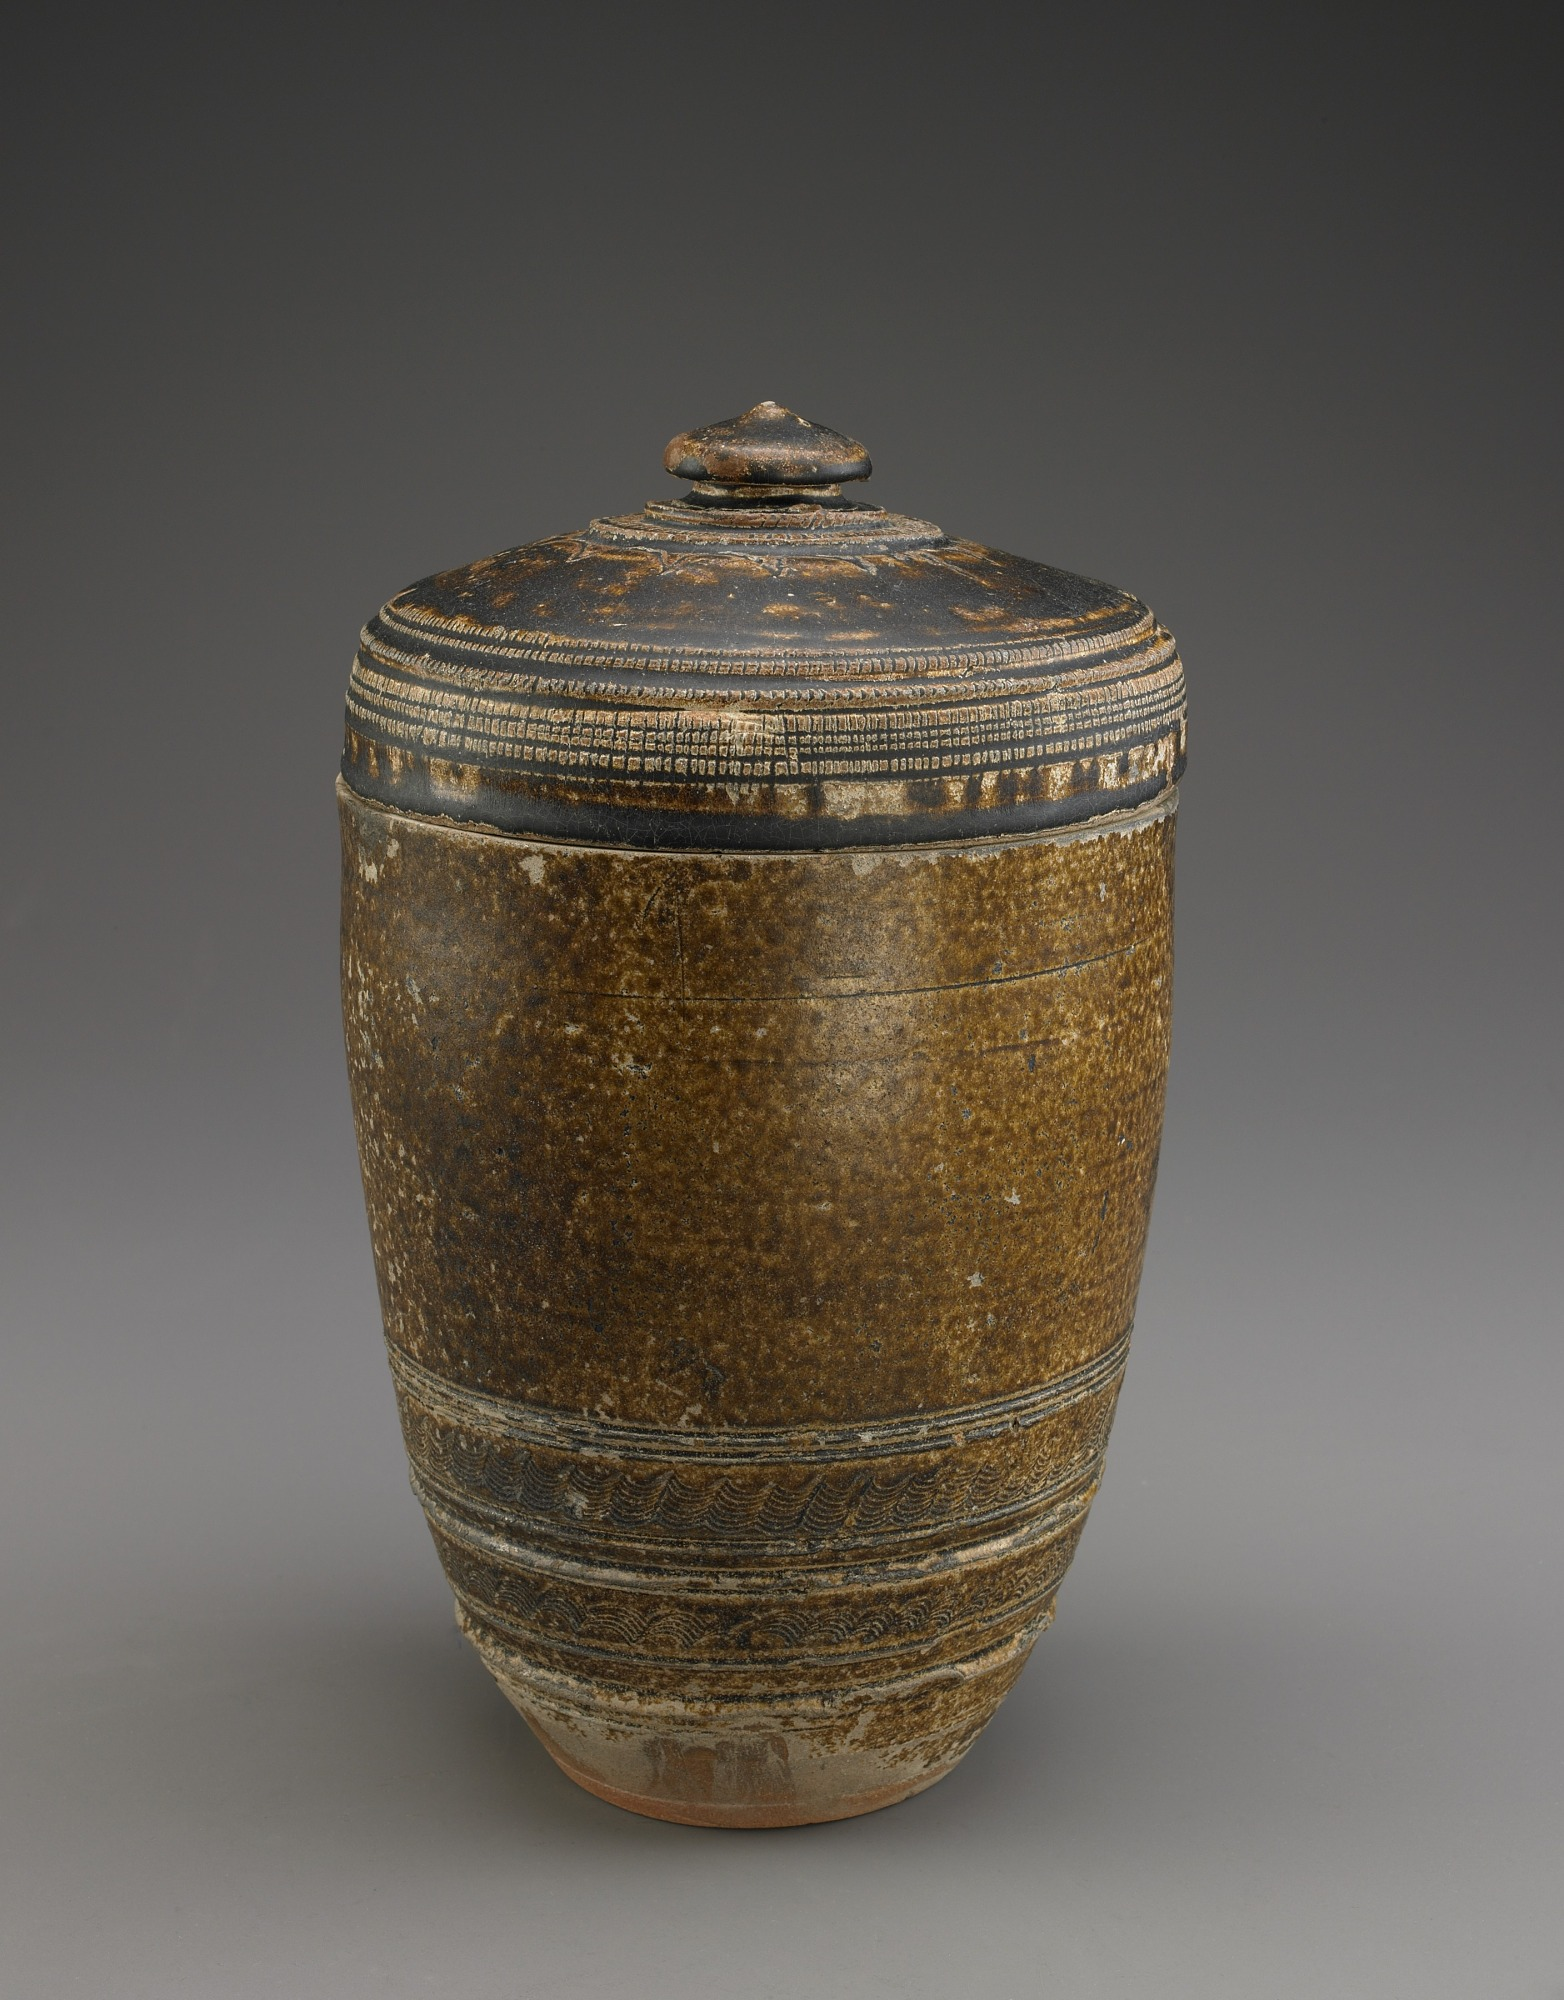 : Cylindrical jar with lid